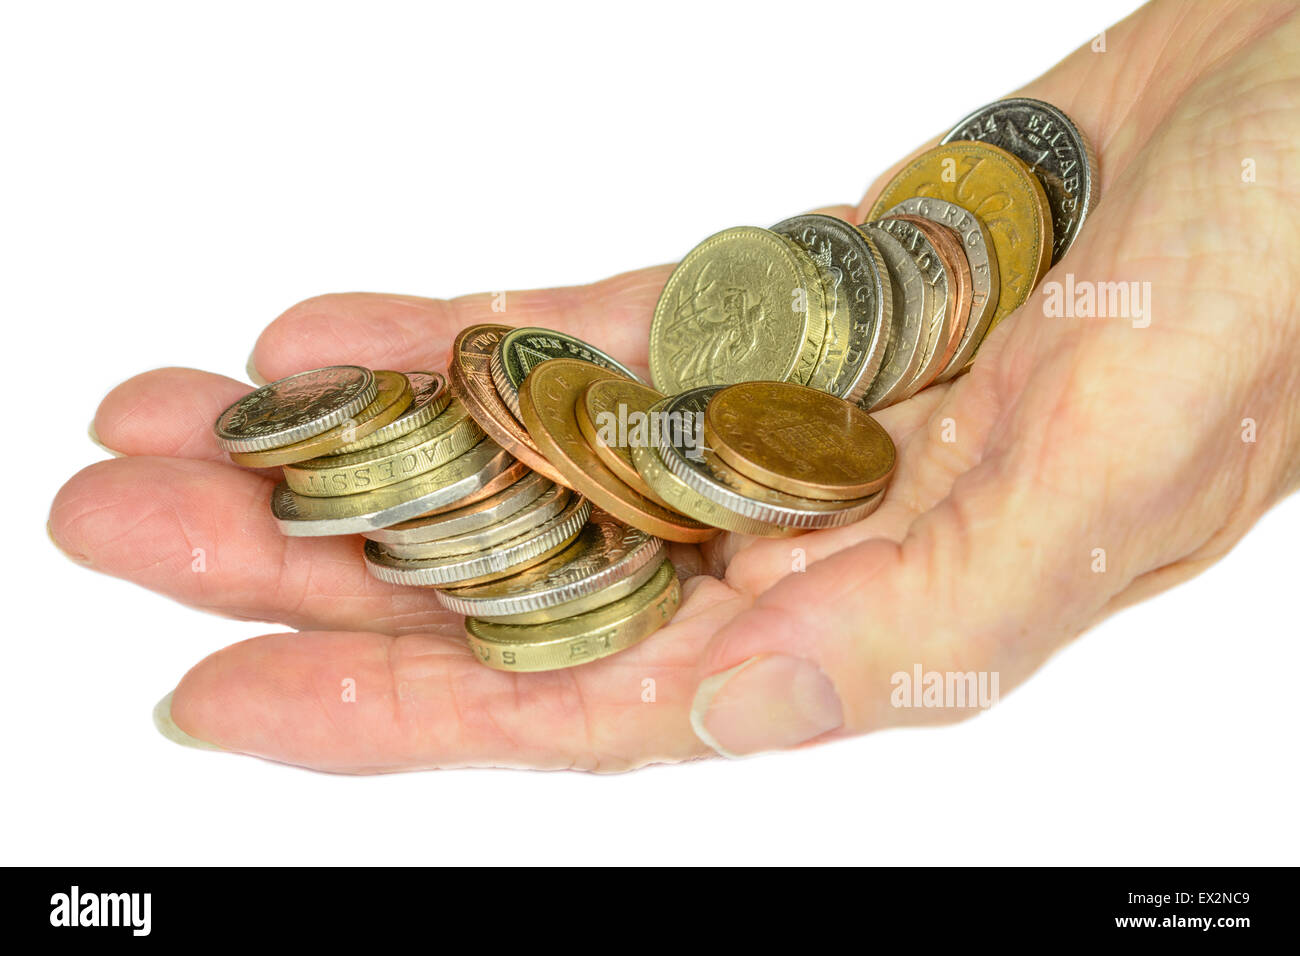 Woman's hand holding UK decimal sterling coins on a white background. - Stock Image